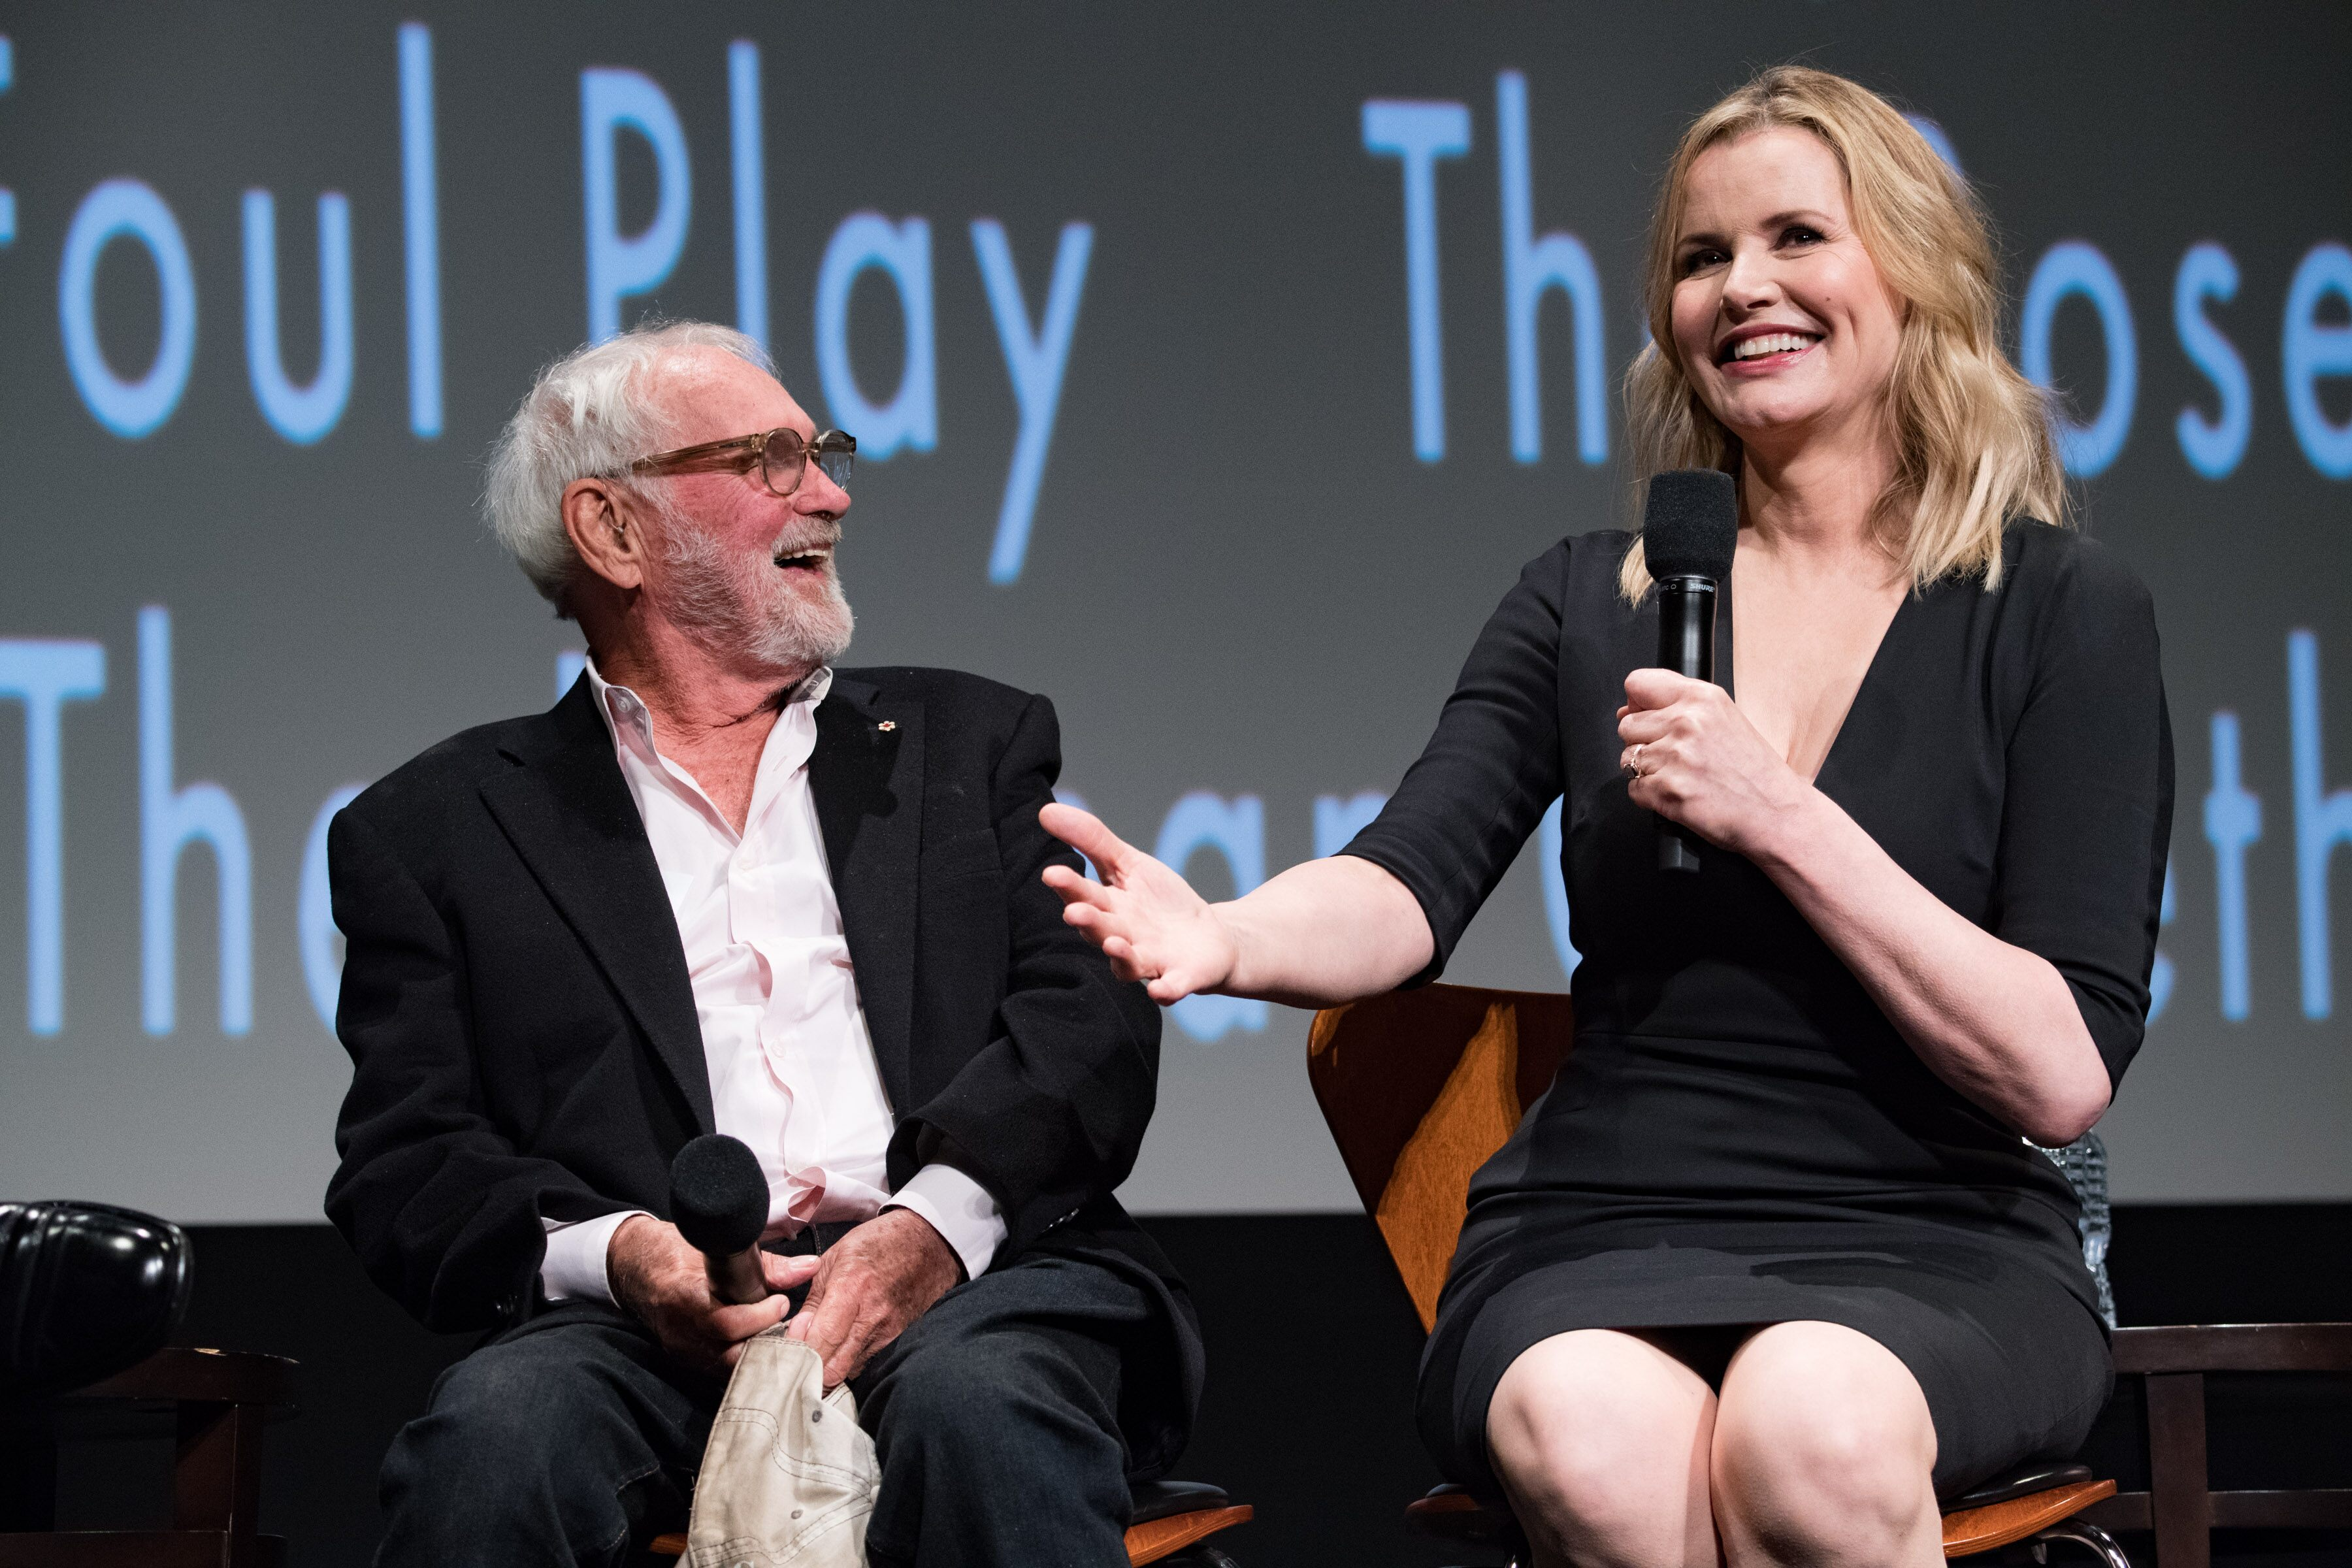 Director Norman Jewison (left) and Geena Davis